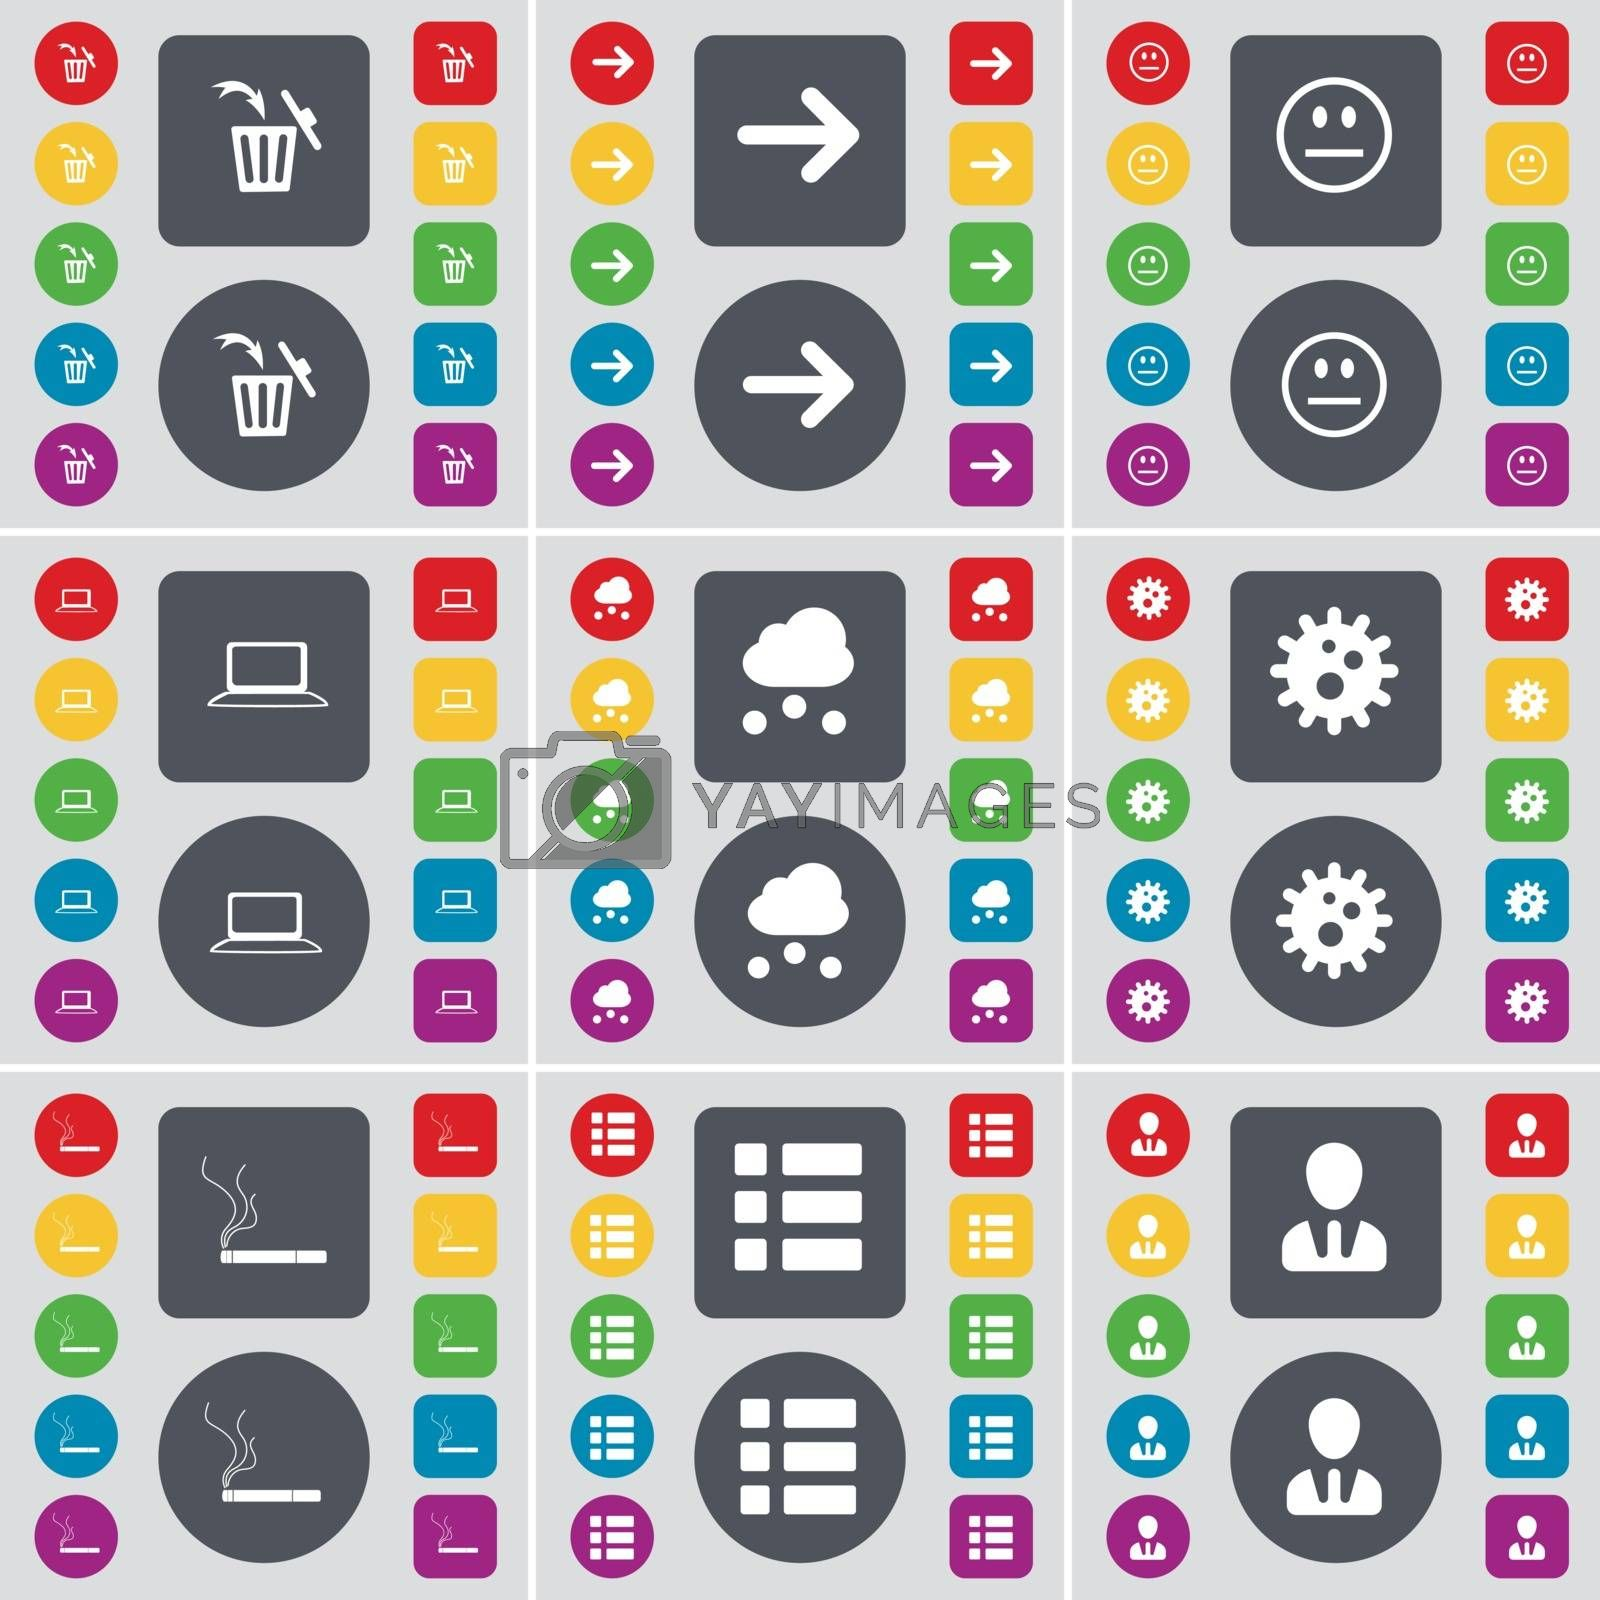 Royalty free image of Trash can, Arrow right, Smile, Laptop, Cloud, Gear, Cigarette, List, Avatar icon symbol. A large set of flat, colored buttons for your design. Vector by serhii_lohvyniuk